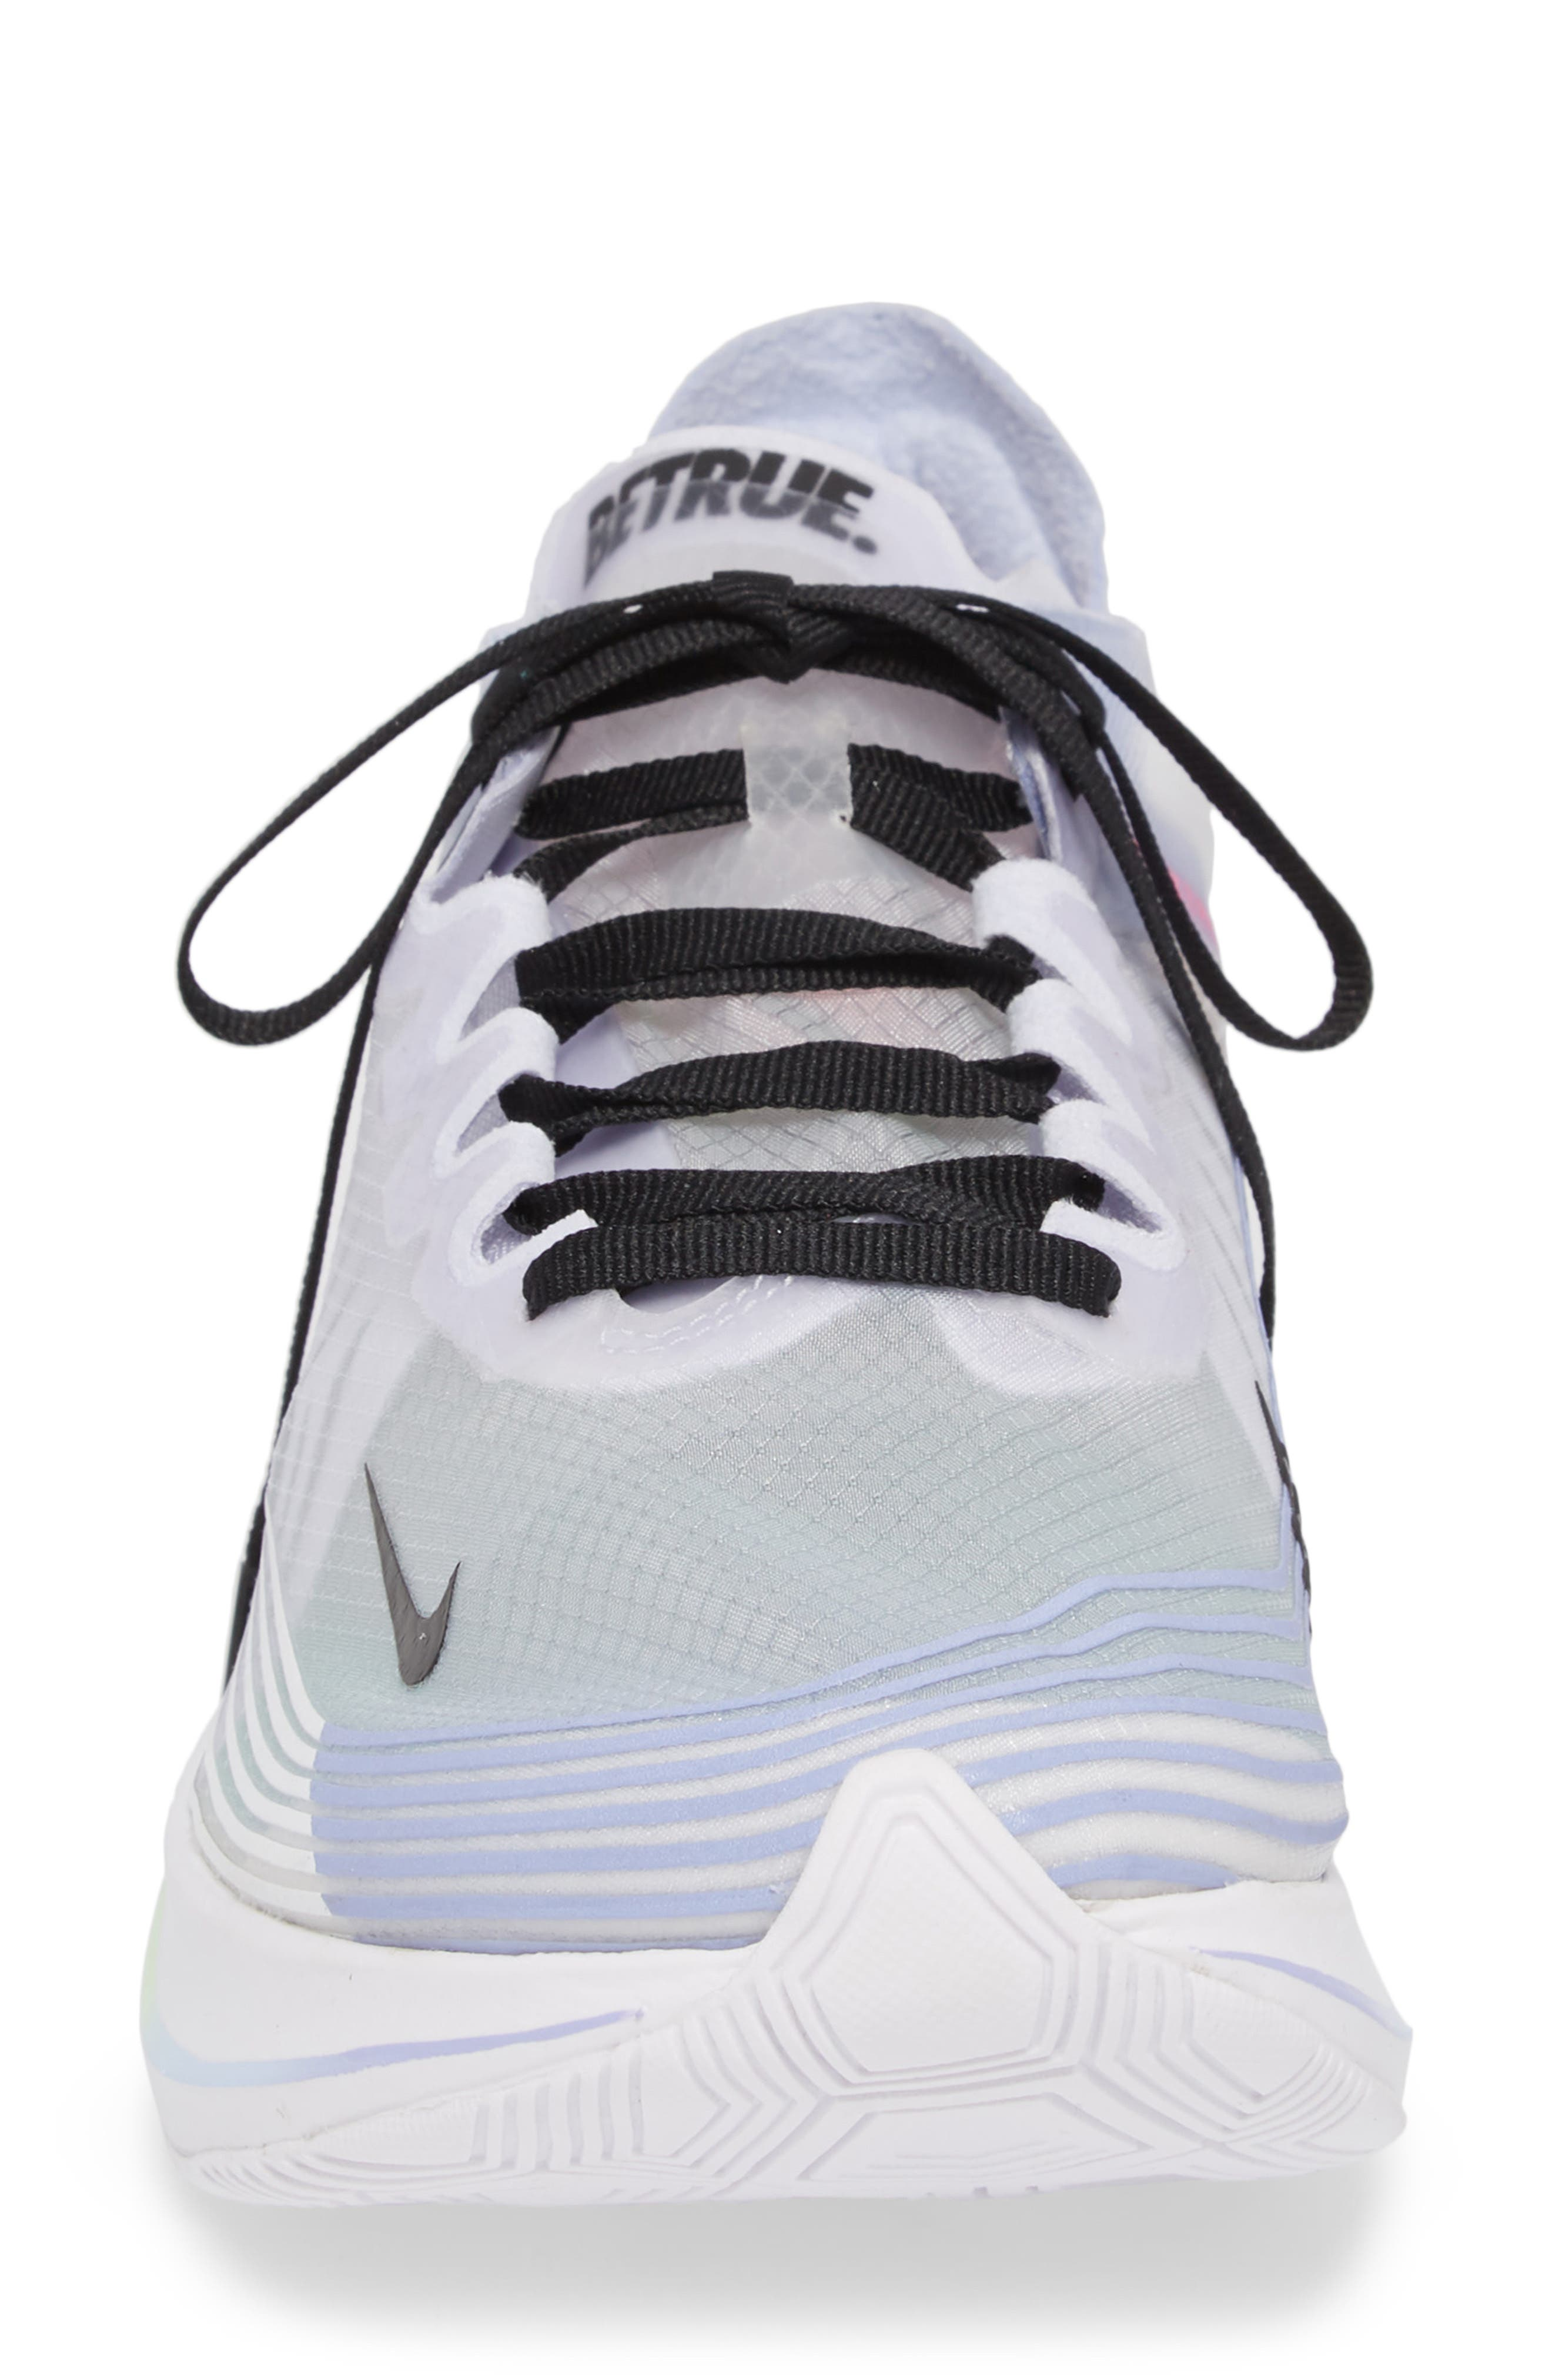 Nordstrom x Nike Zoom Fly BETRUE Running Shoe,                             Alternate thumbnail 4, color,                             105